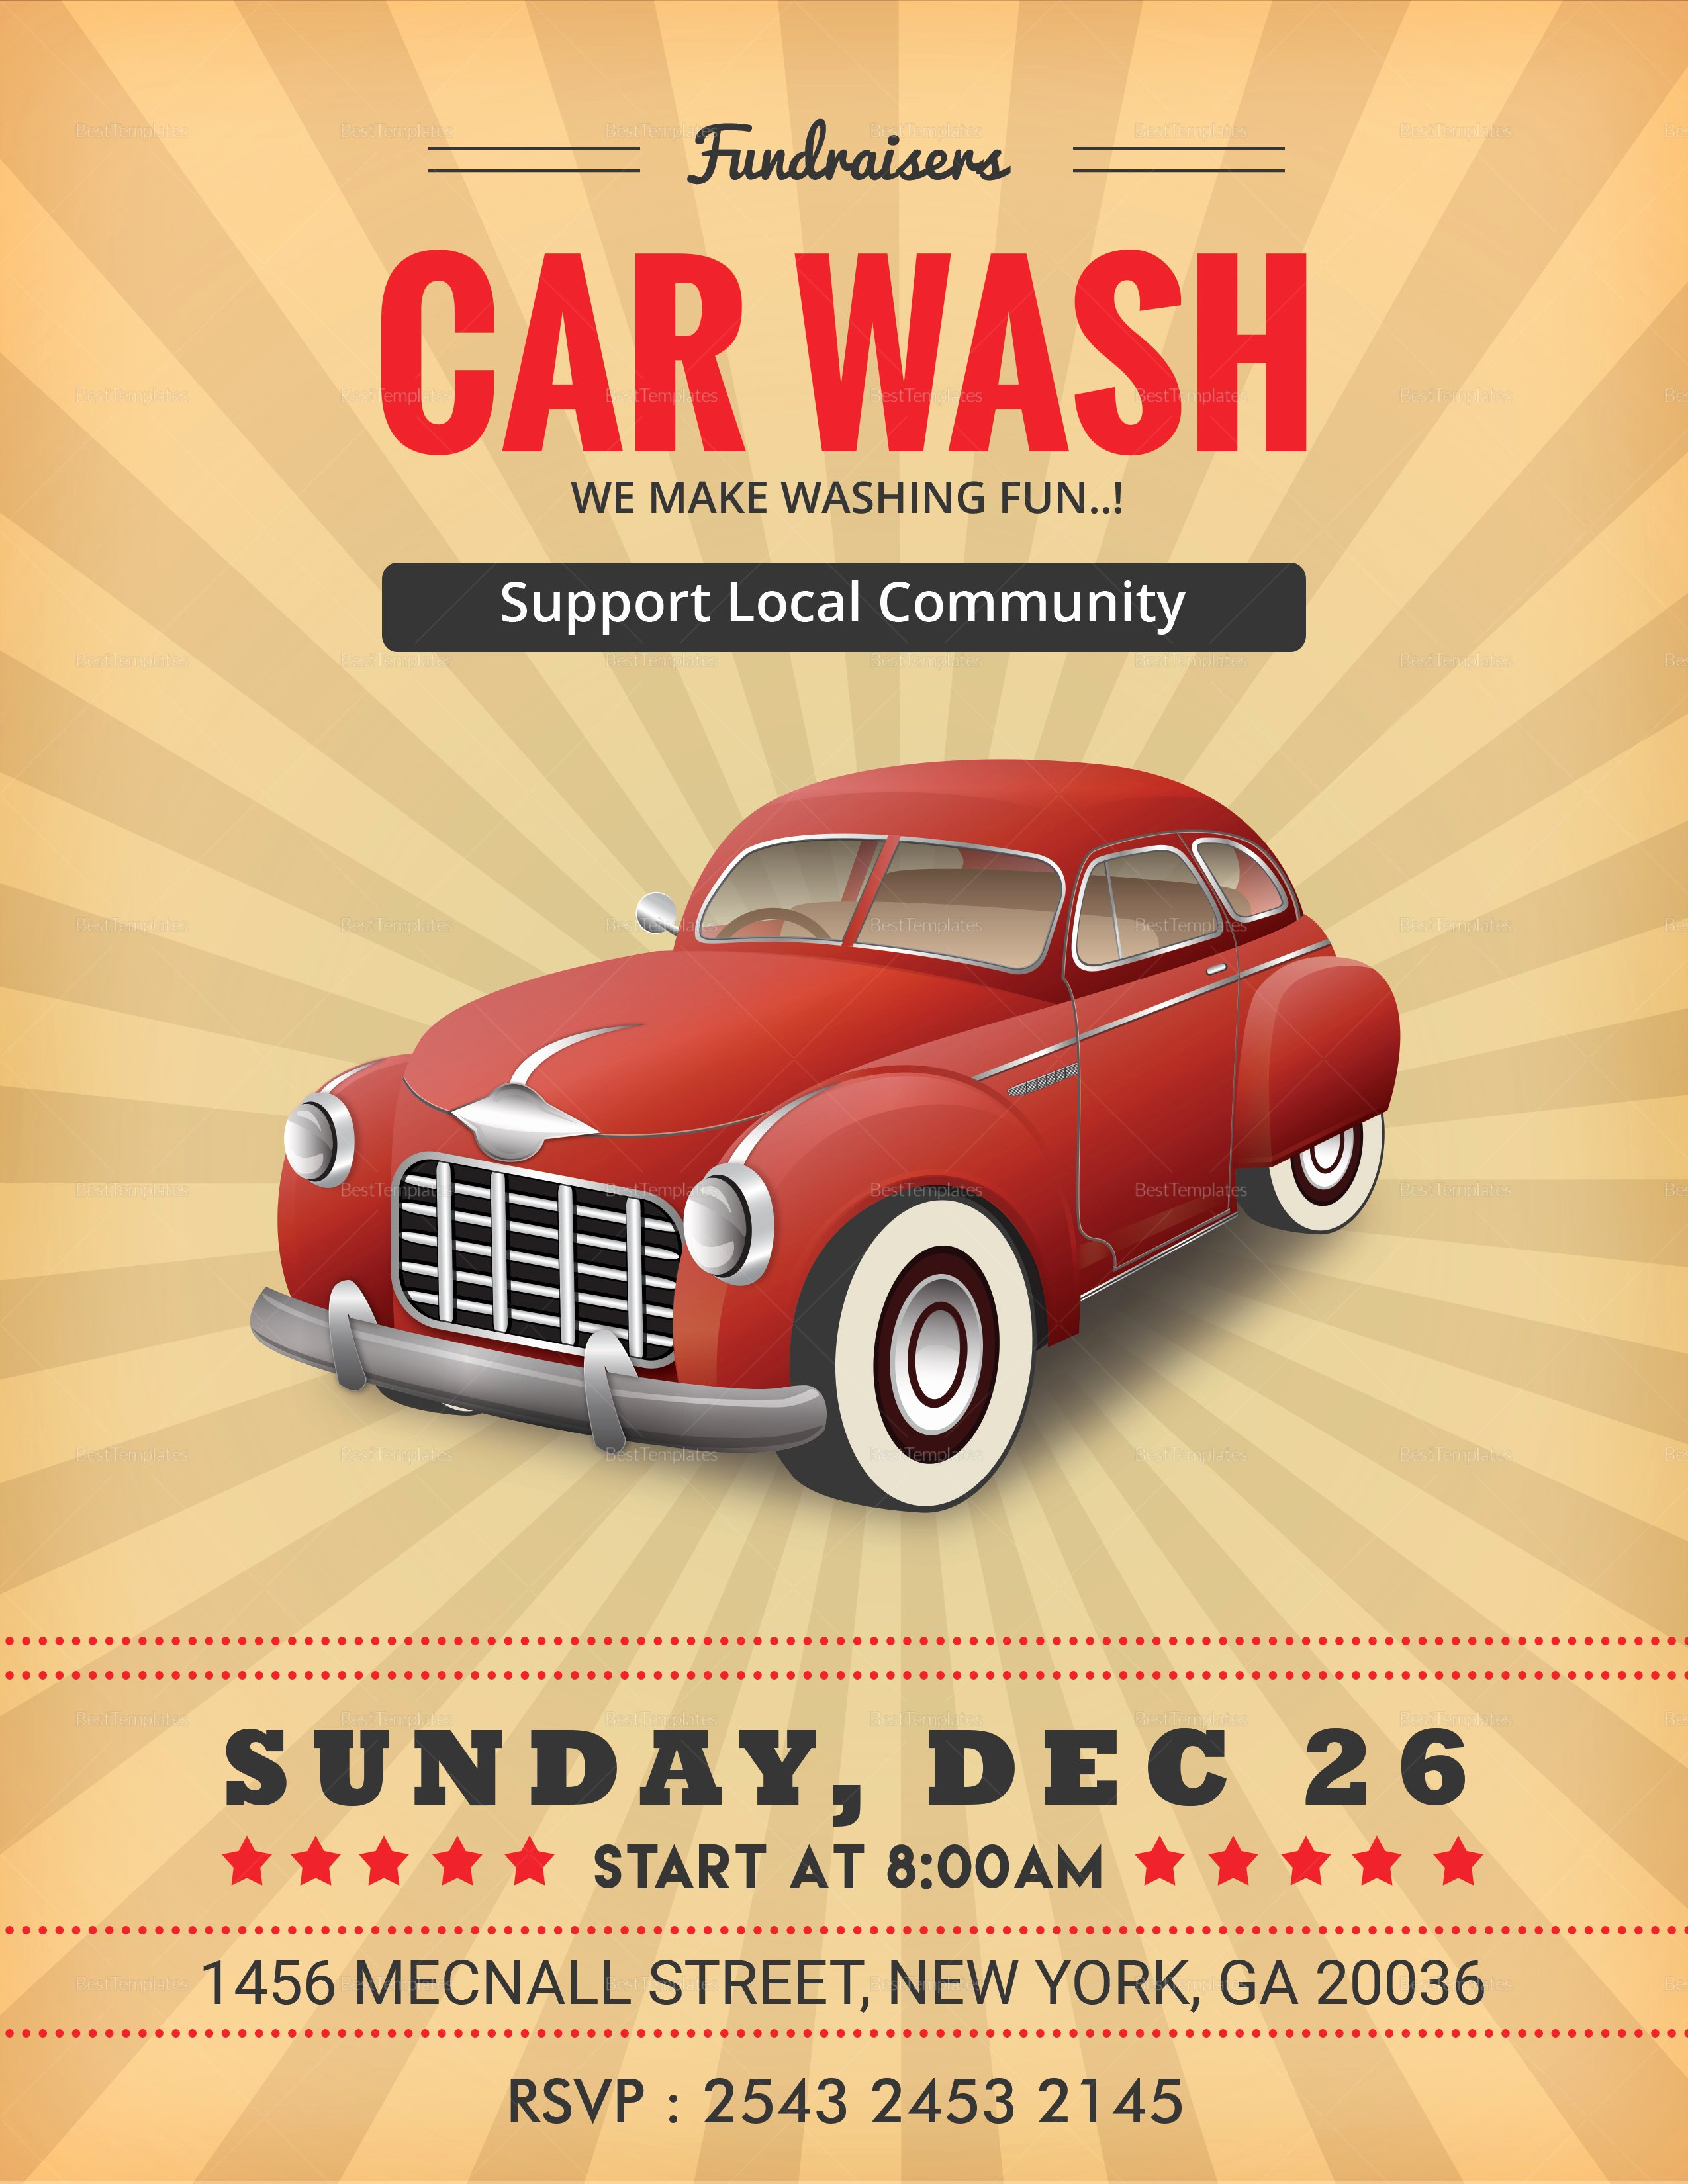 Car Wash Flyers Template Luxury Fundraiser Car Wash Flyer Design Template In Word Psd